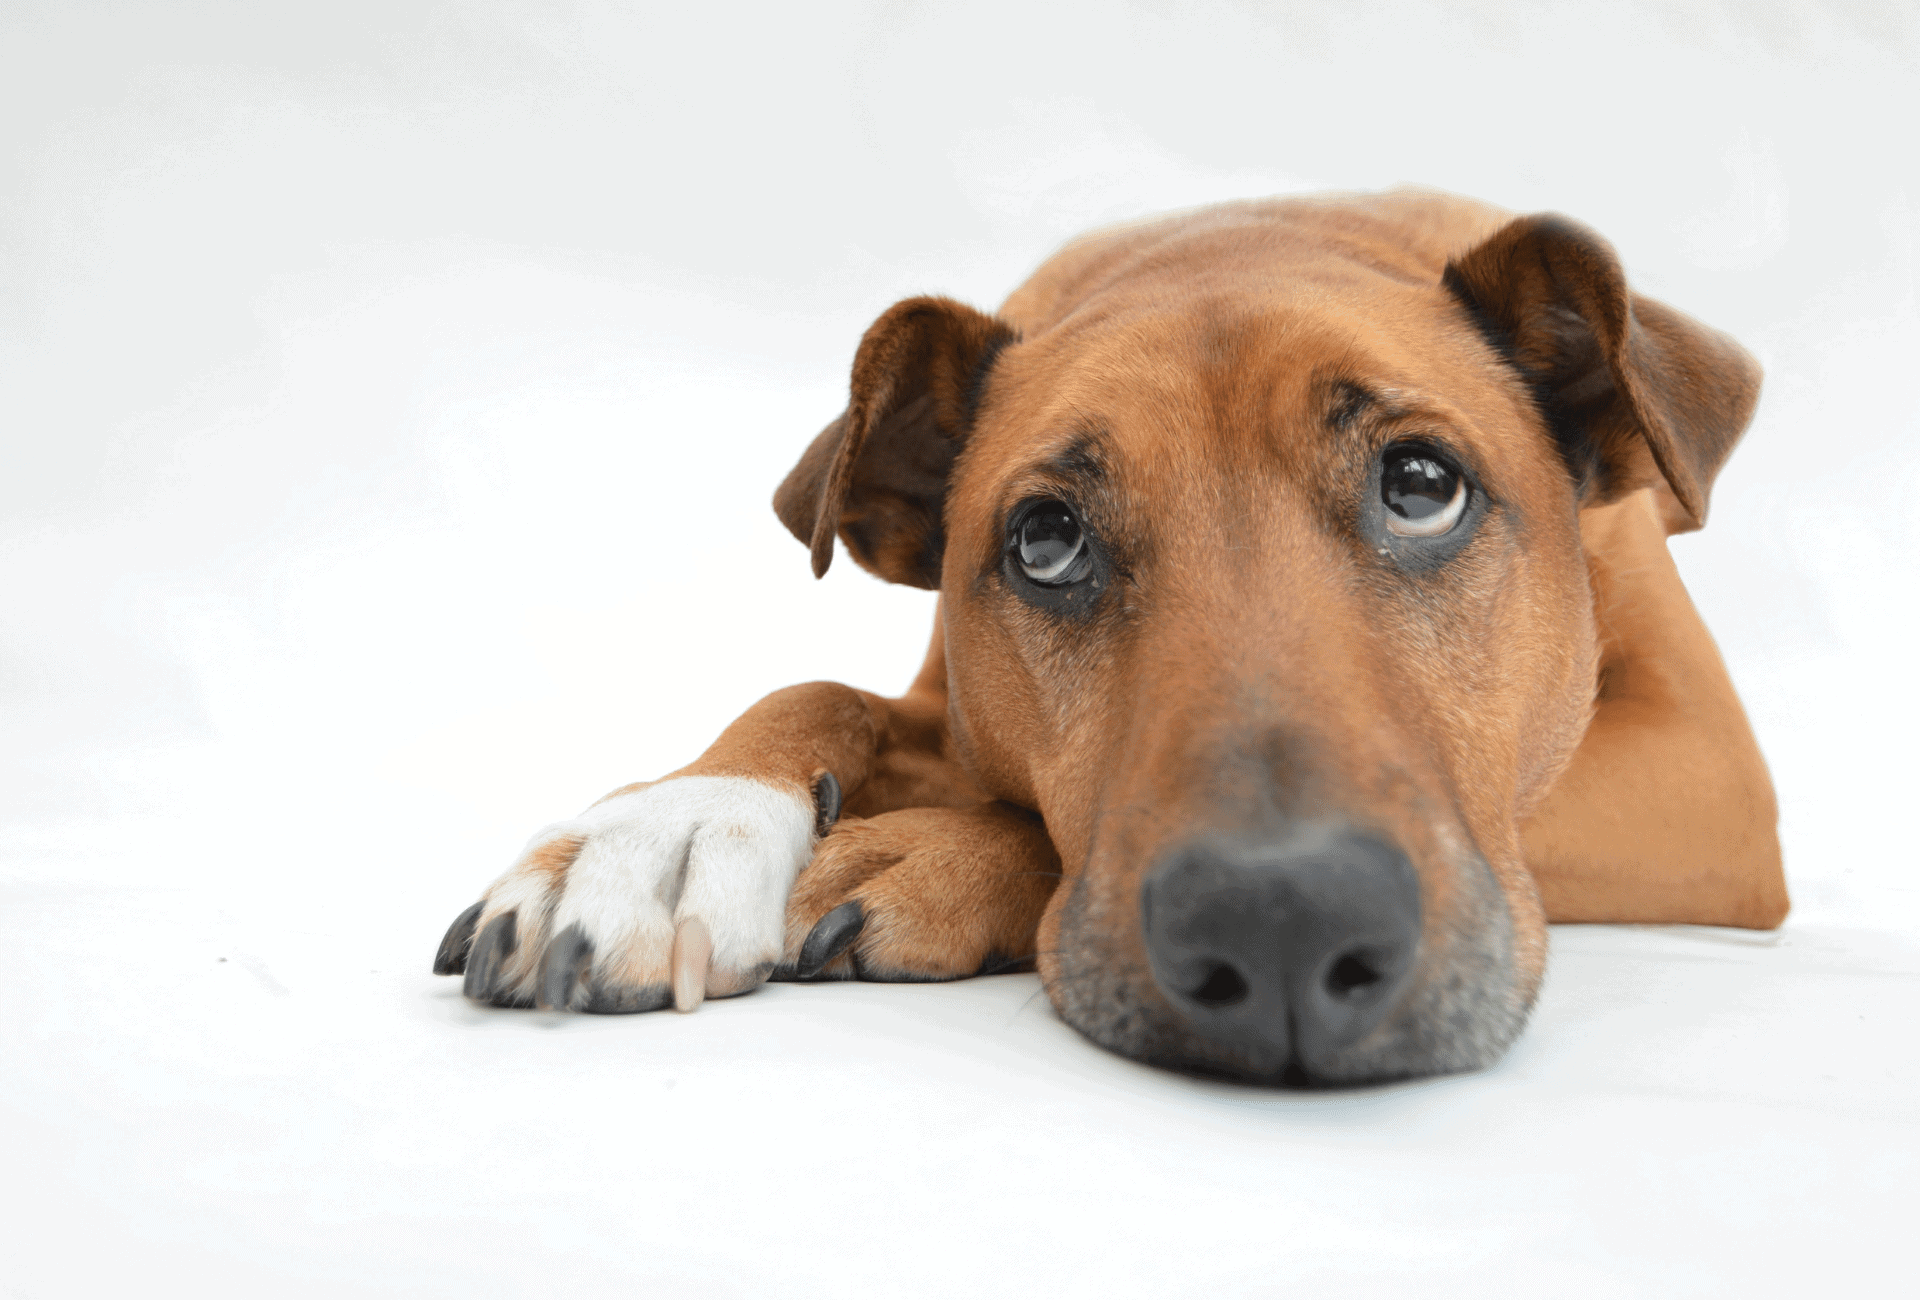 Dog looks sad with his head resting on his paw in front of of a white background.